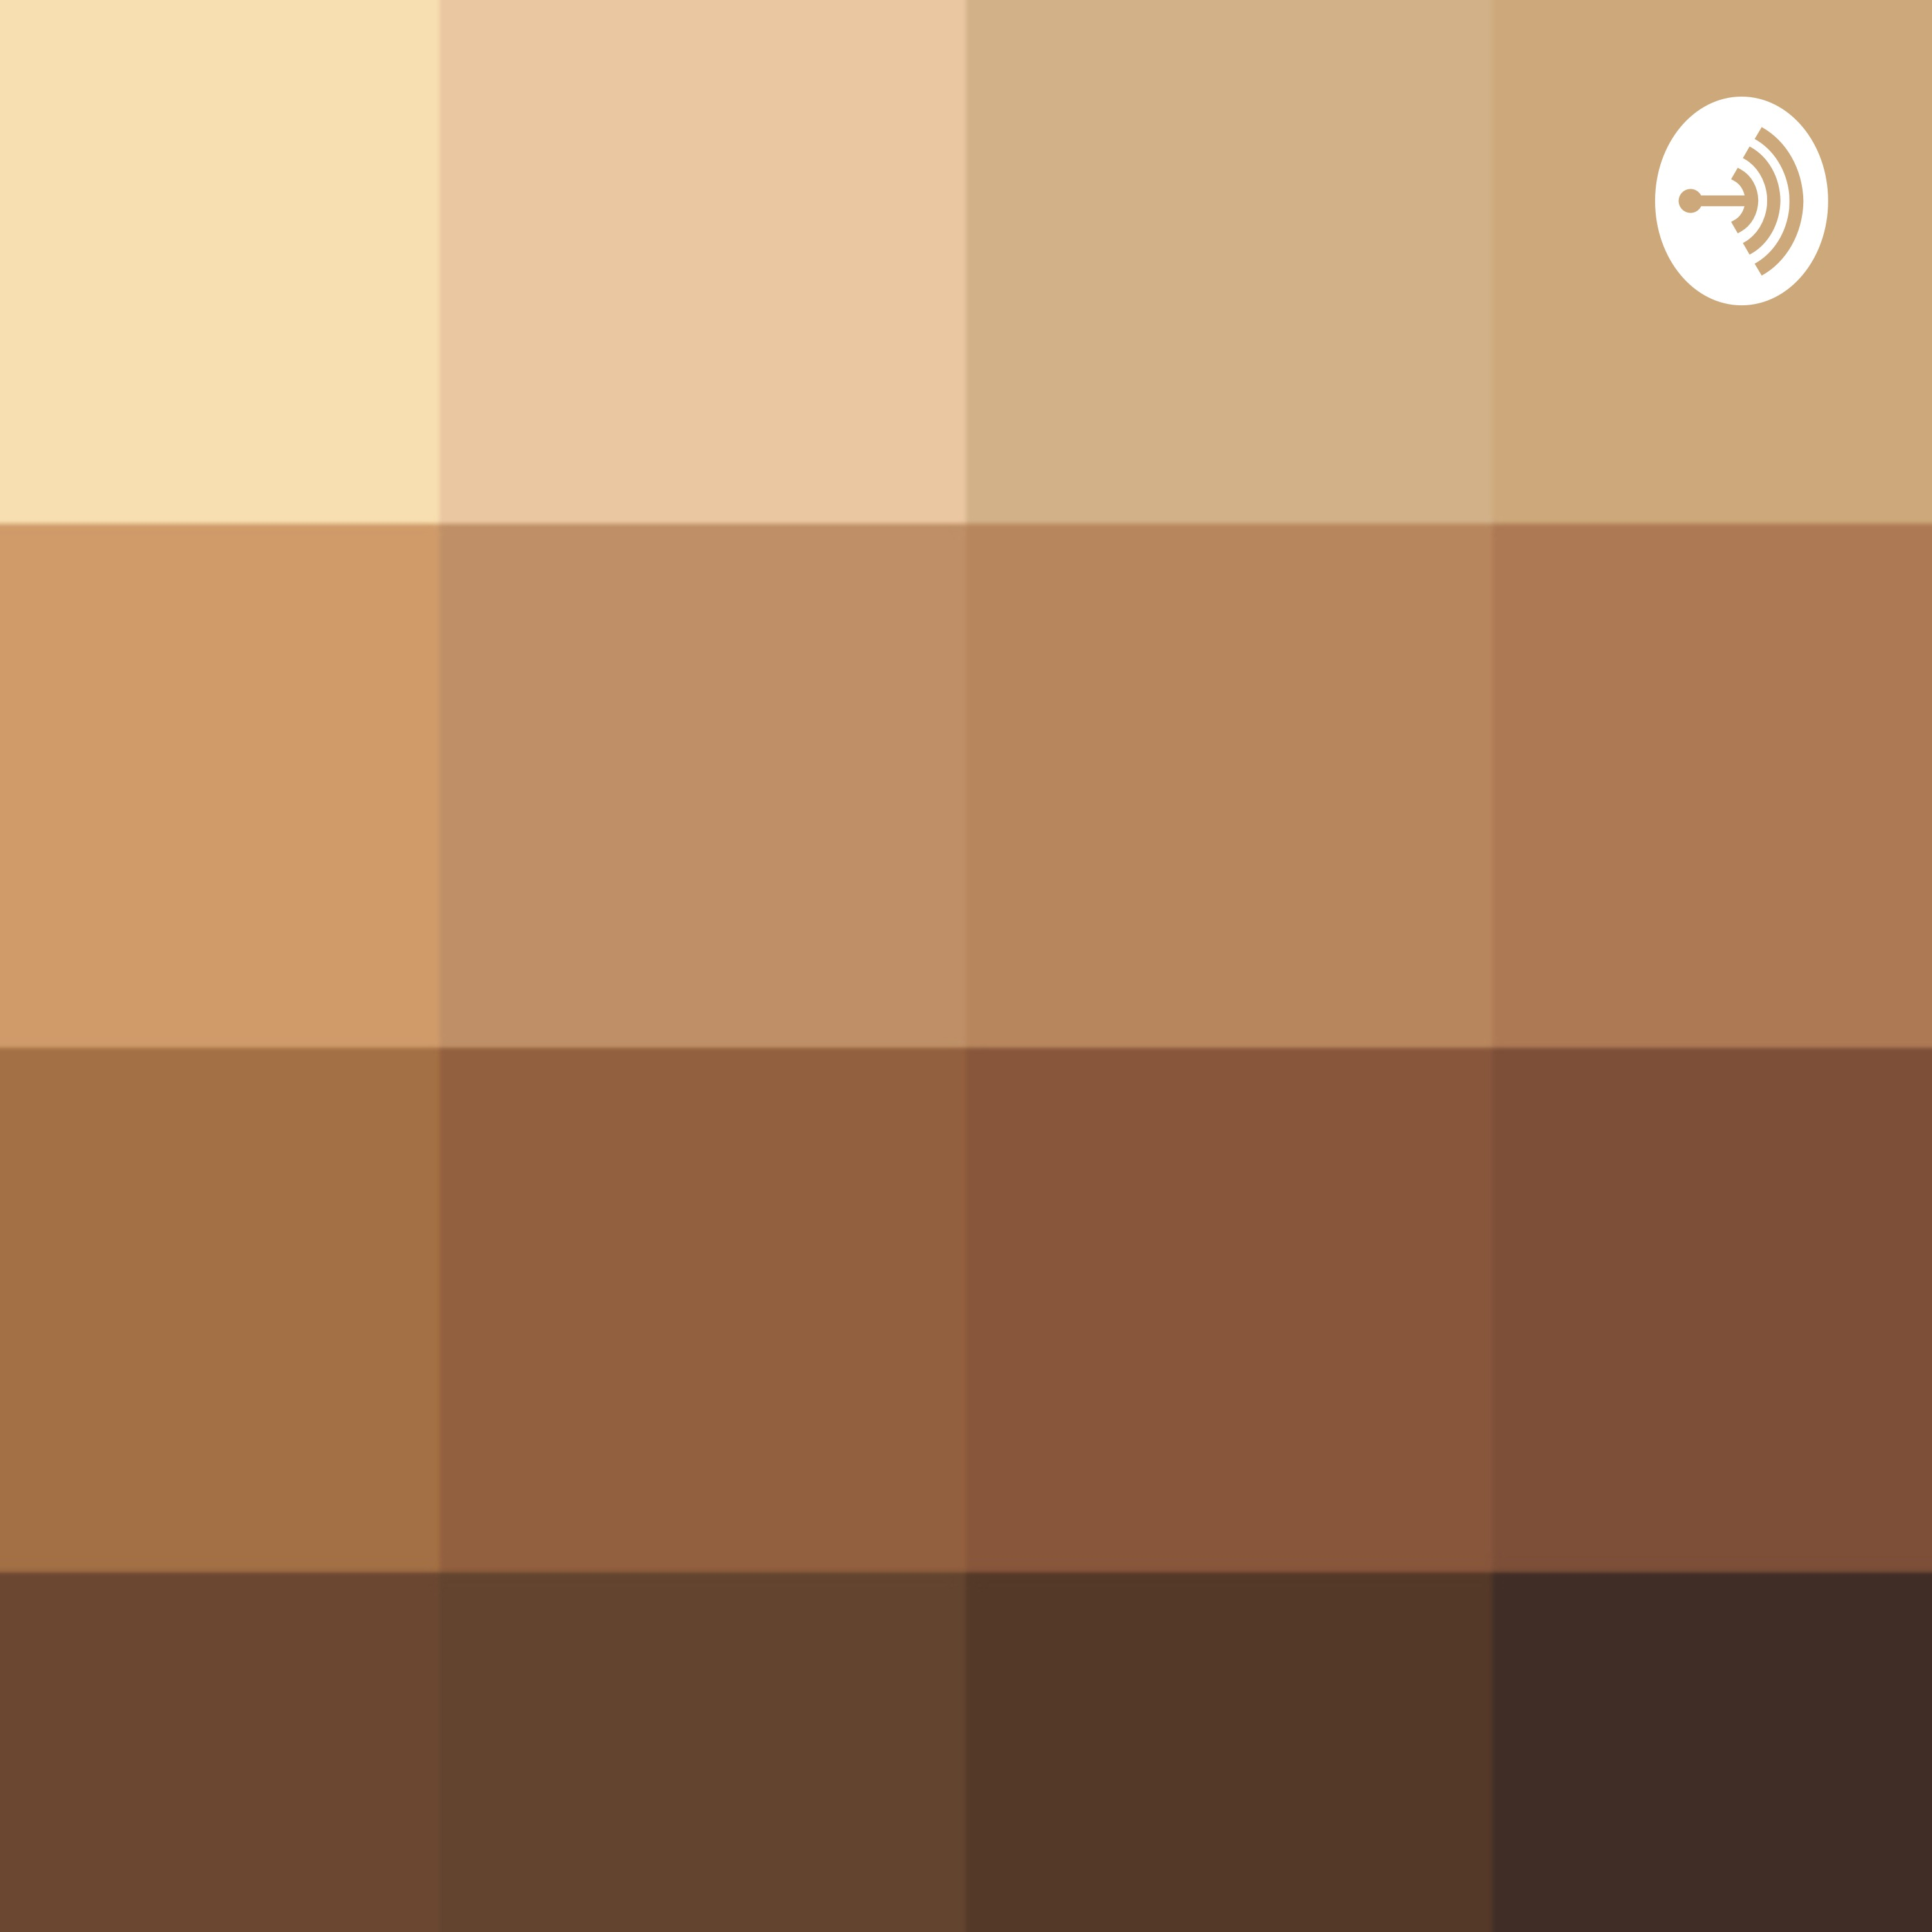 50 shades of Brown | Listen via Stitcher for Podcasts